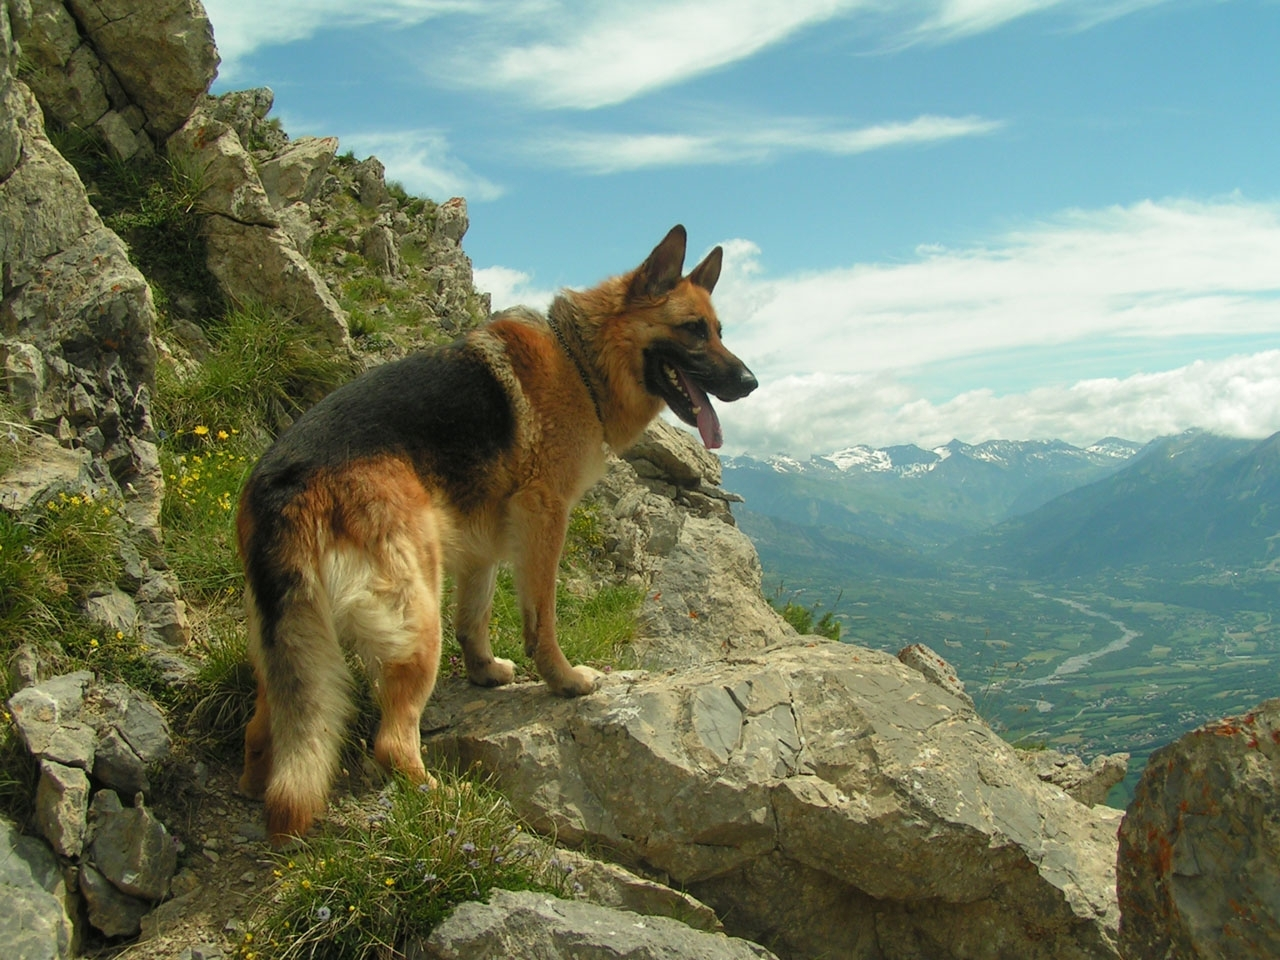 24875 download wallpaper Animals, Dogs, Mountains screensavers and pictures for free